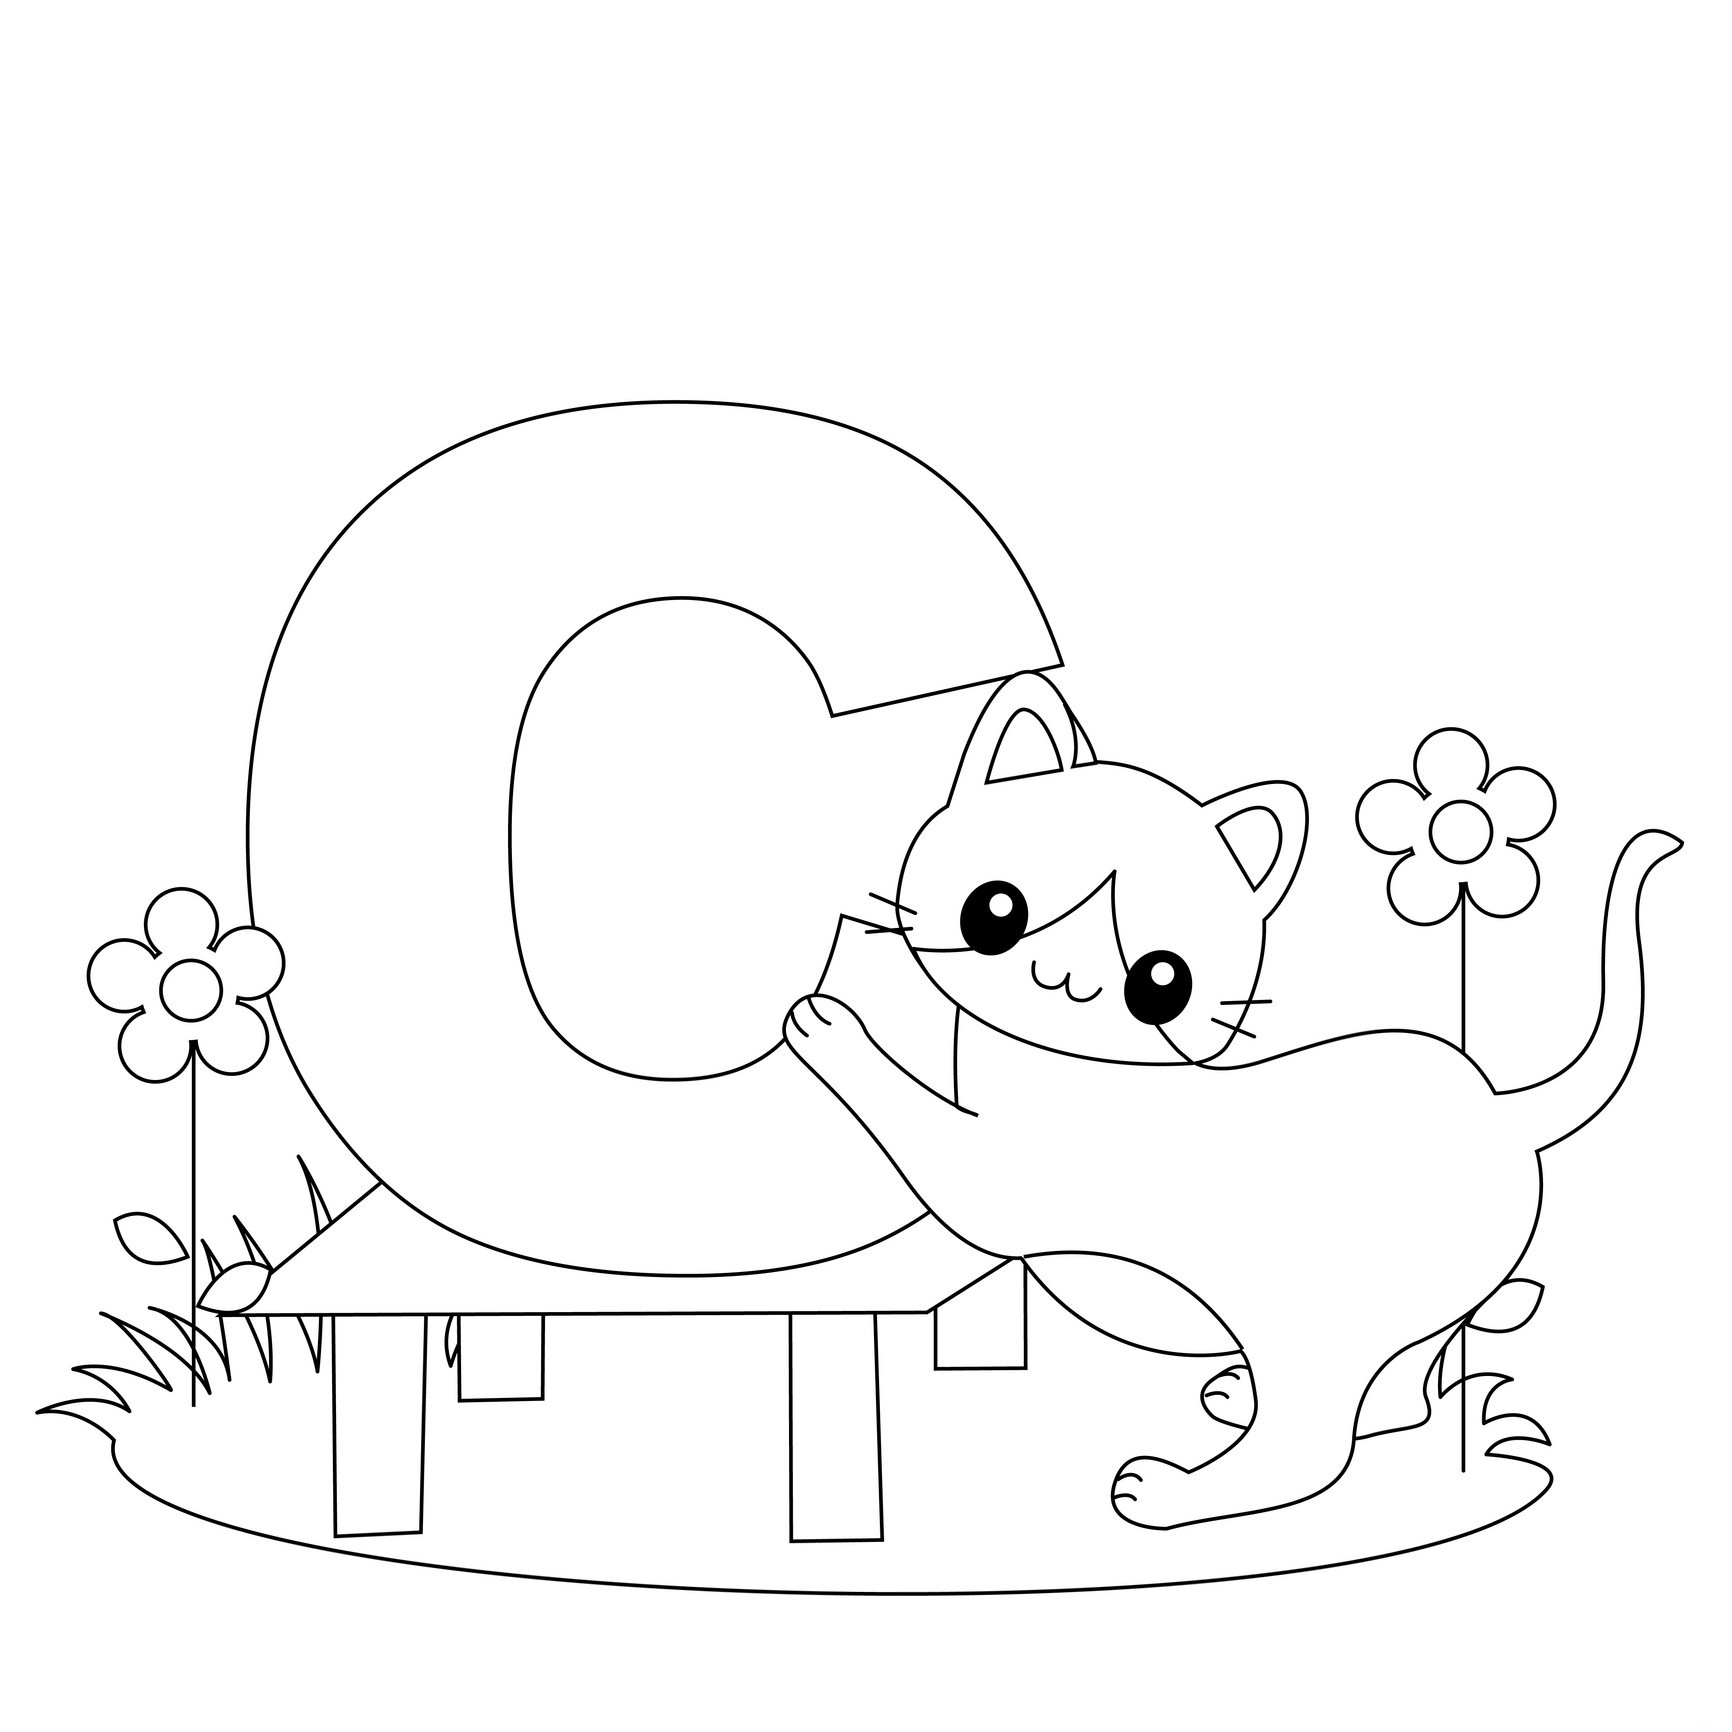 c for coloring letter c is for camel coloring page free printable for coloring c